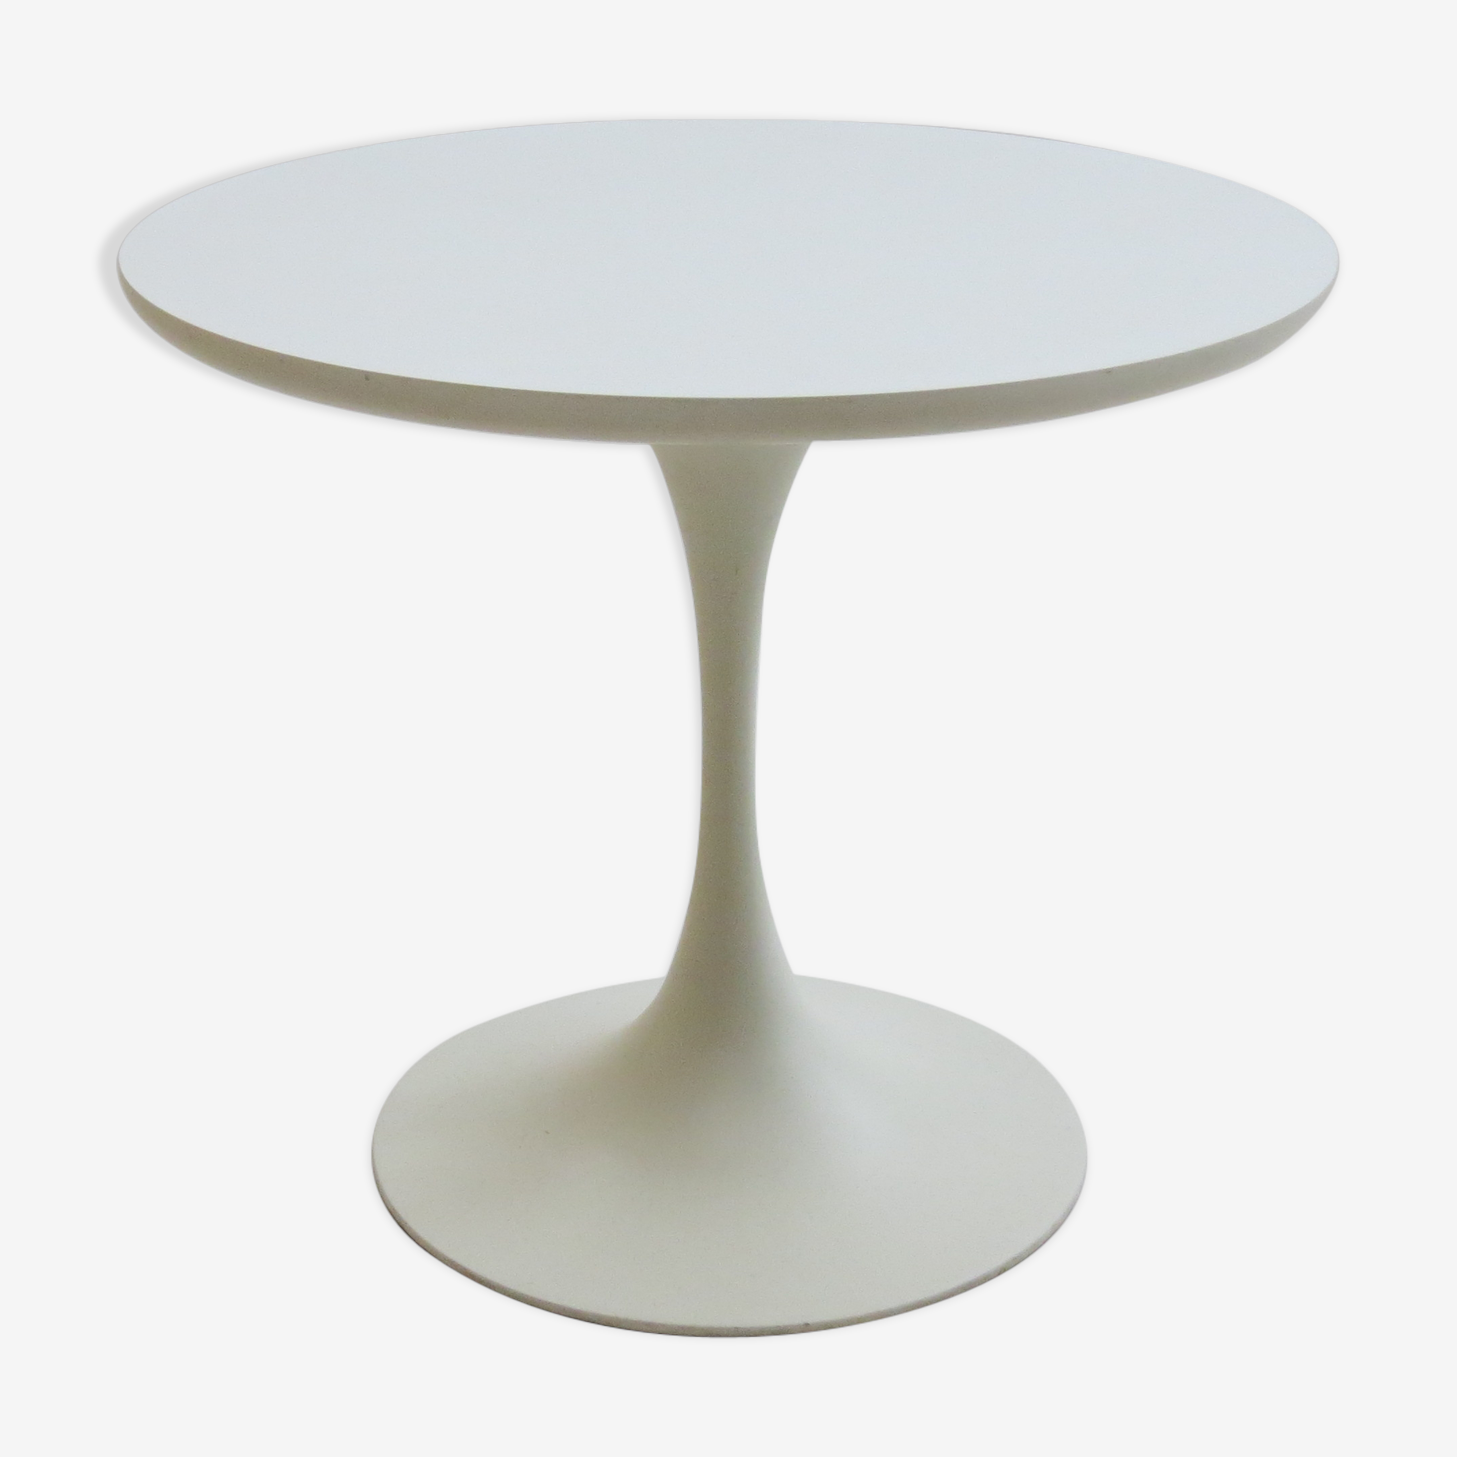 1960s tulip side table designed by Maurice Burke for Arkana